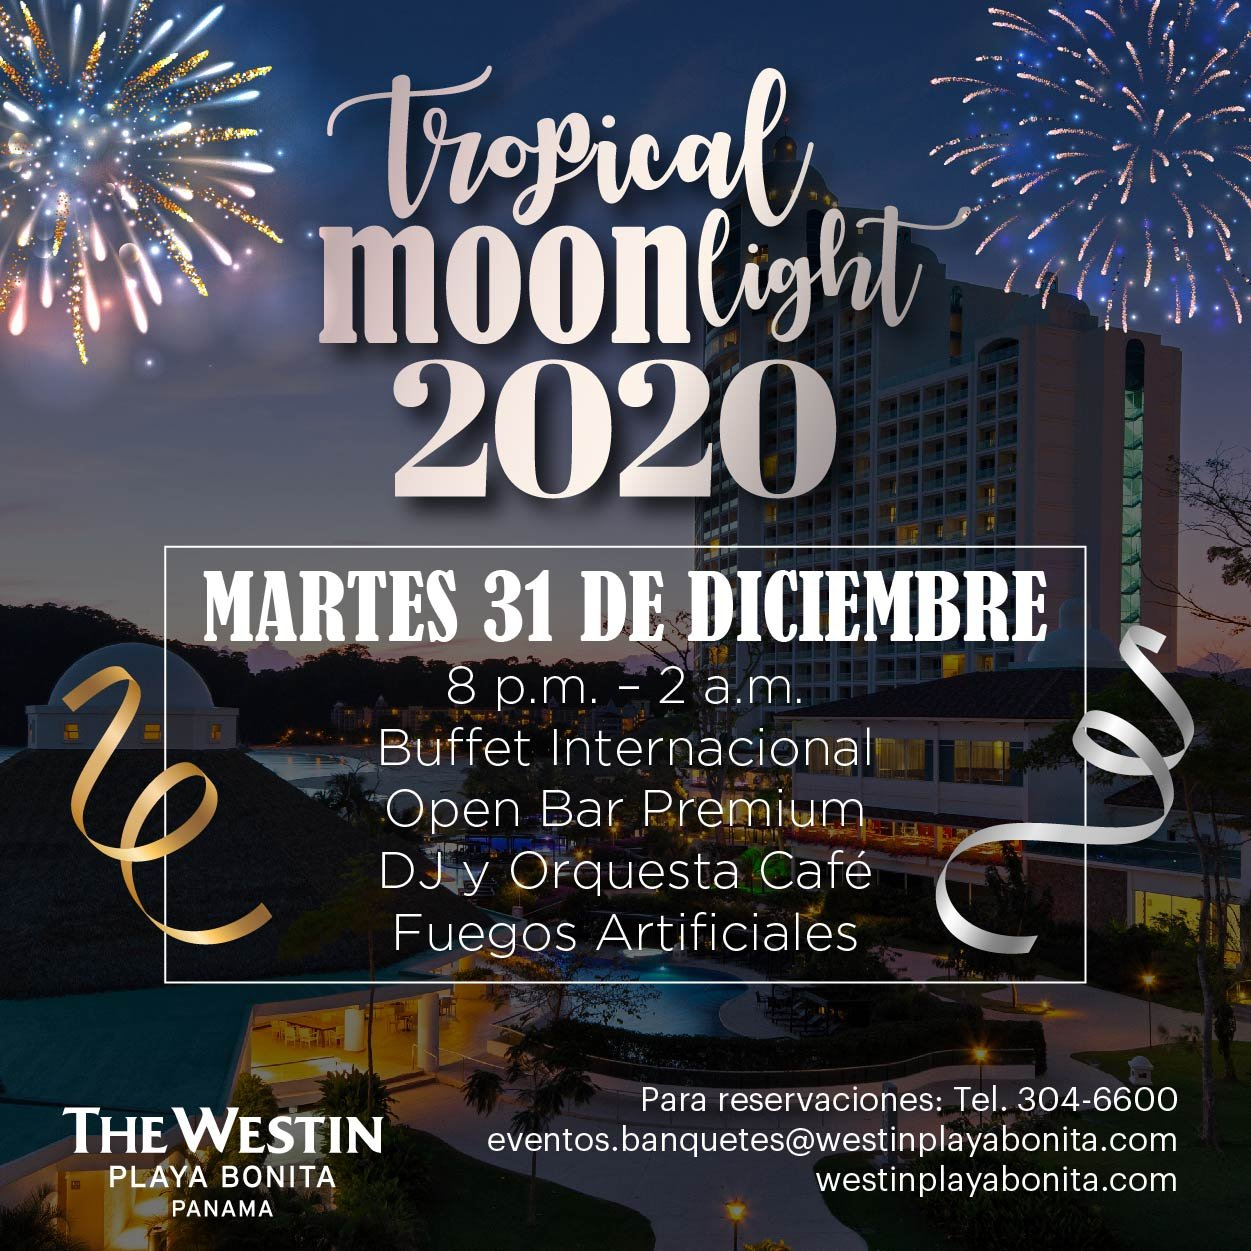 Westin Playa Bonita invites you